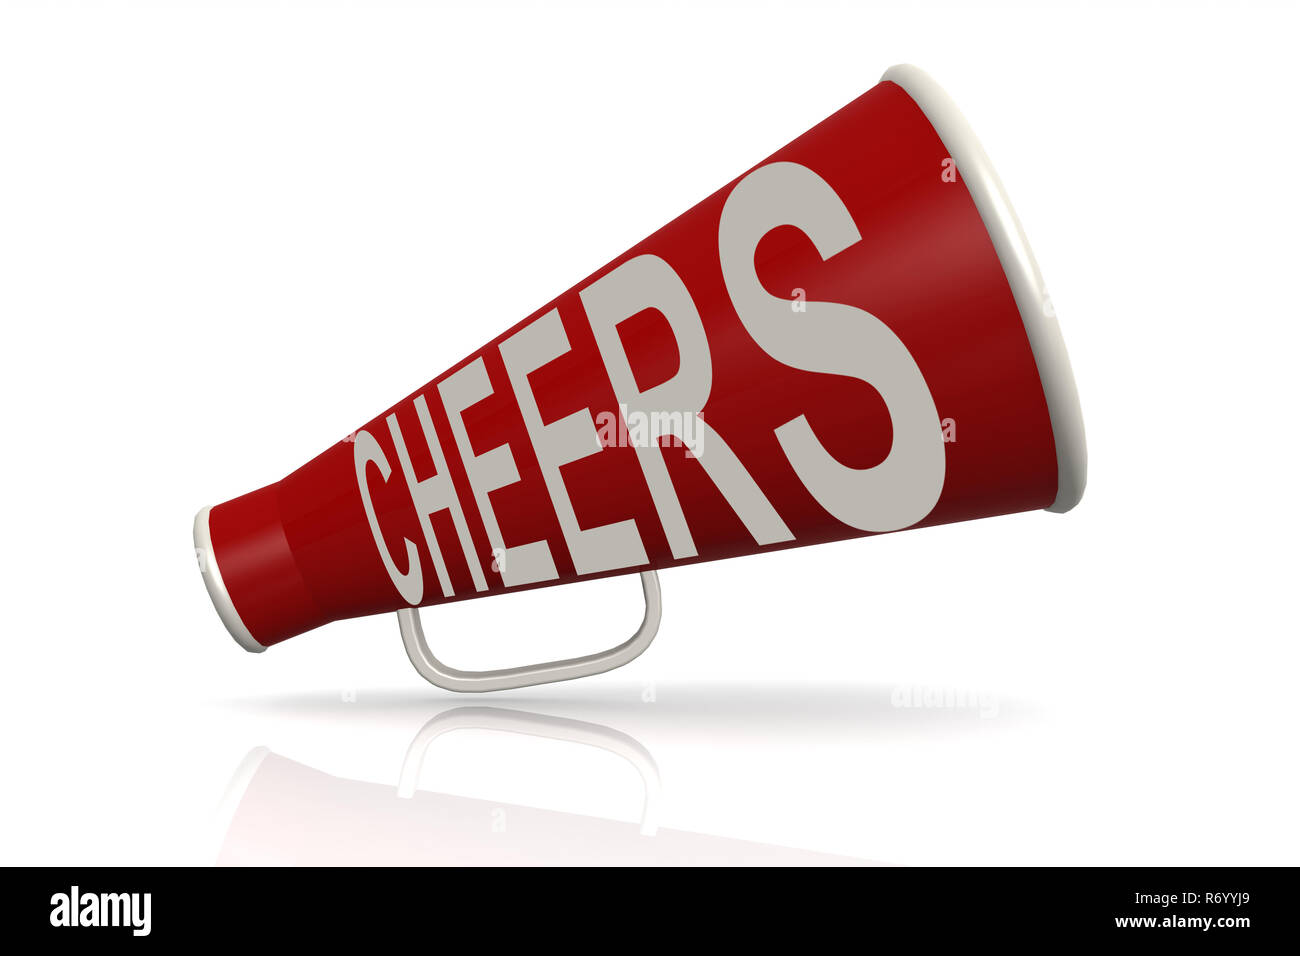 Red megaphone with cheer word - Stock Image